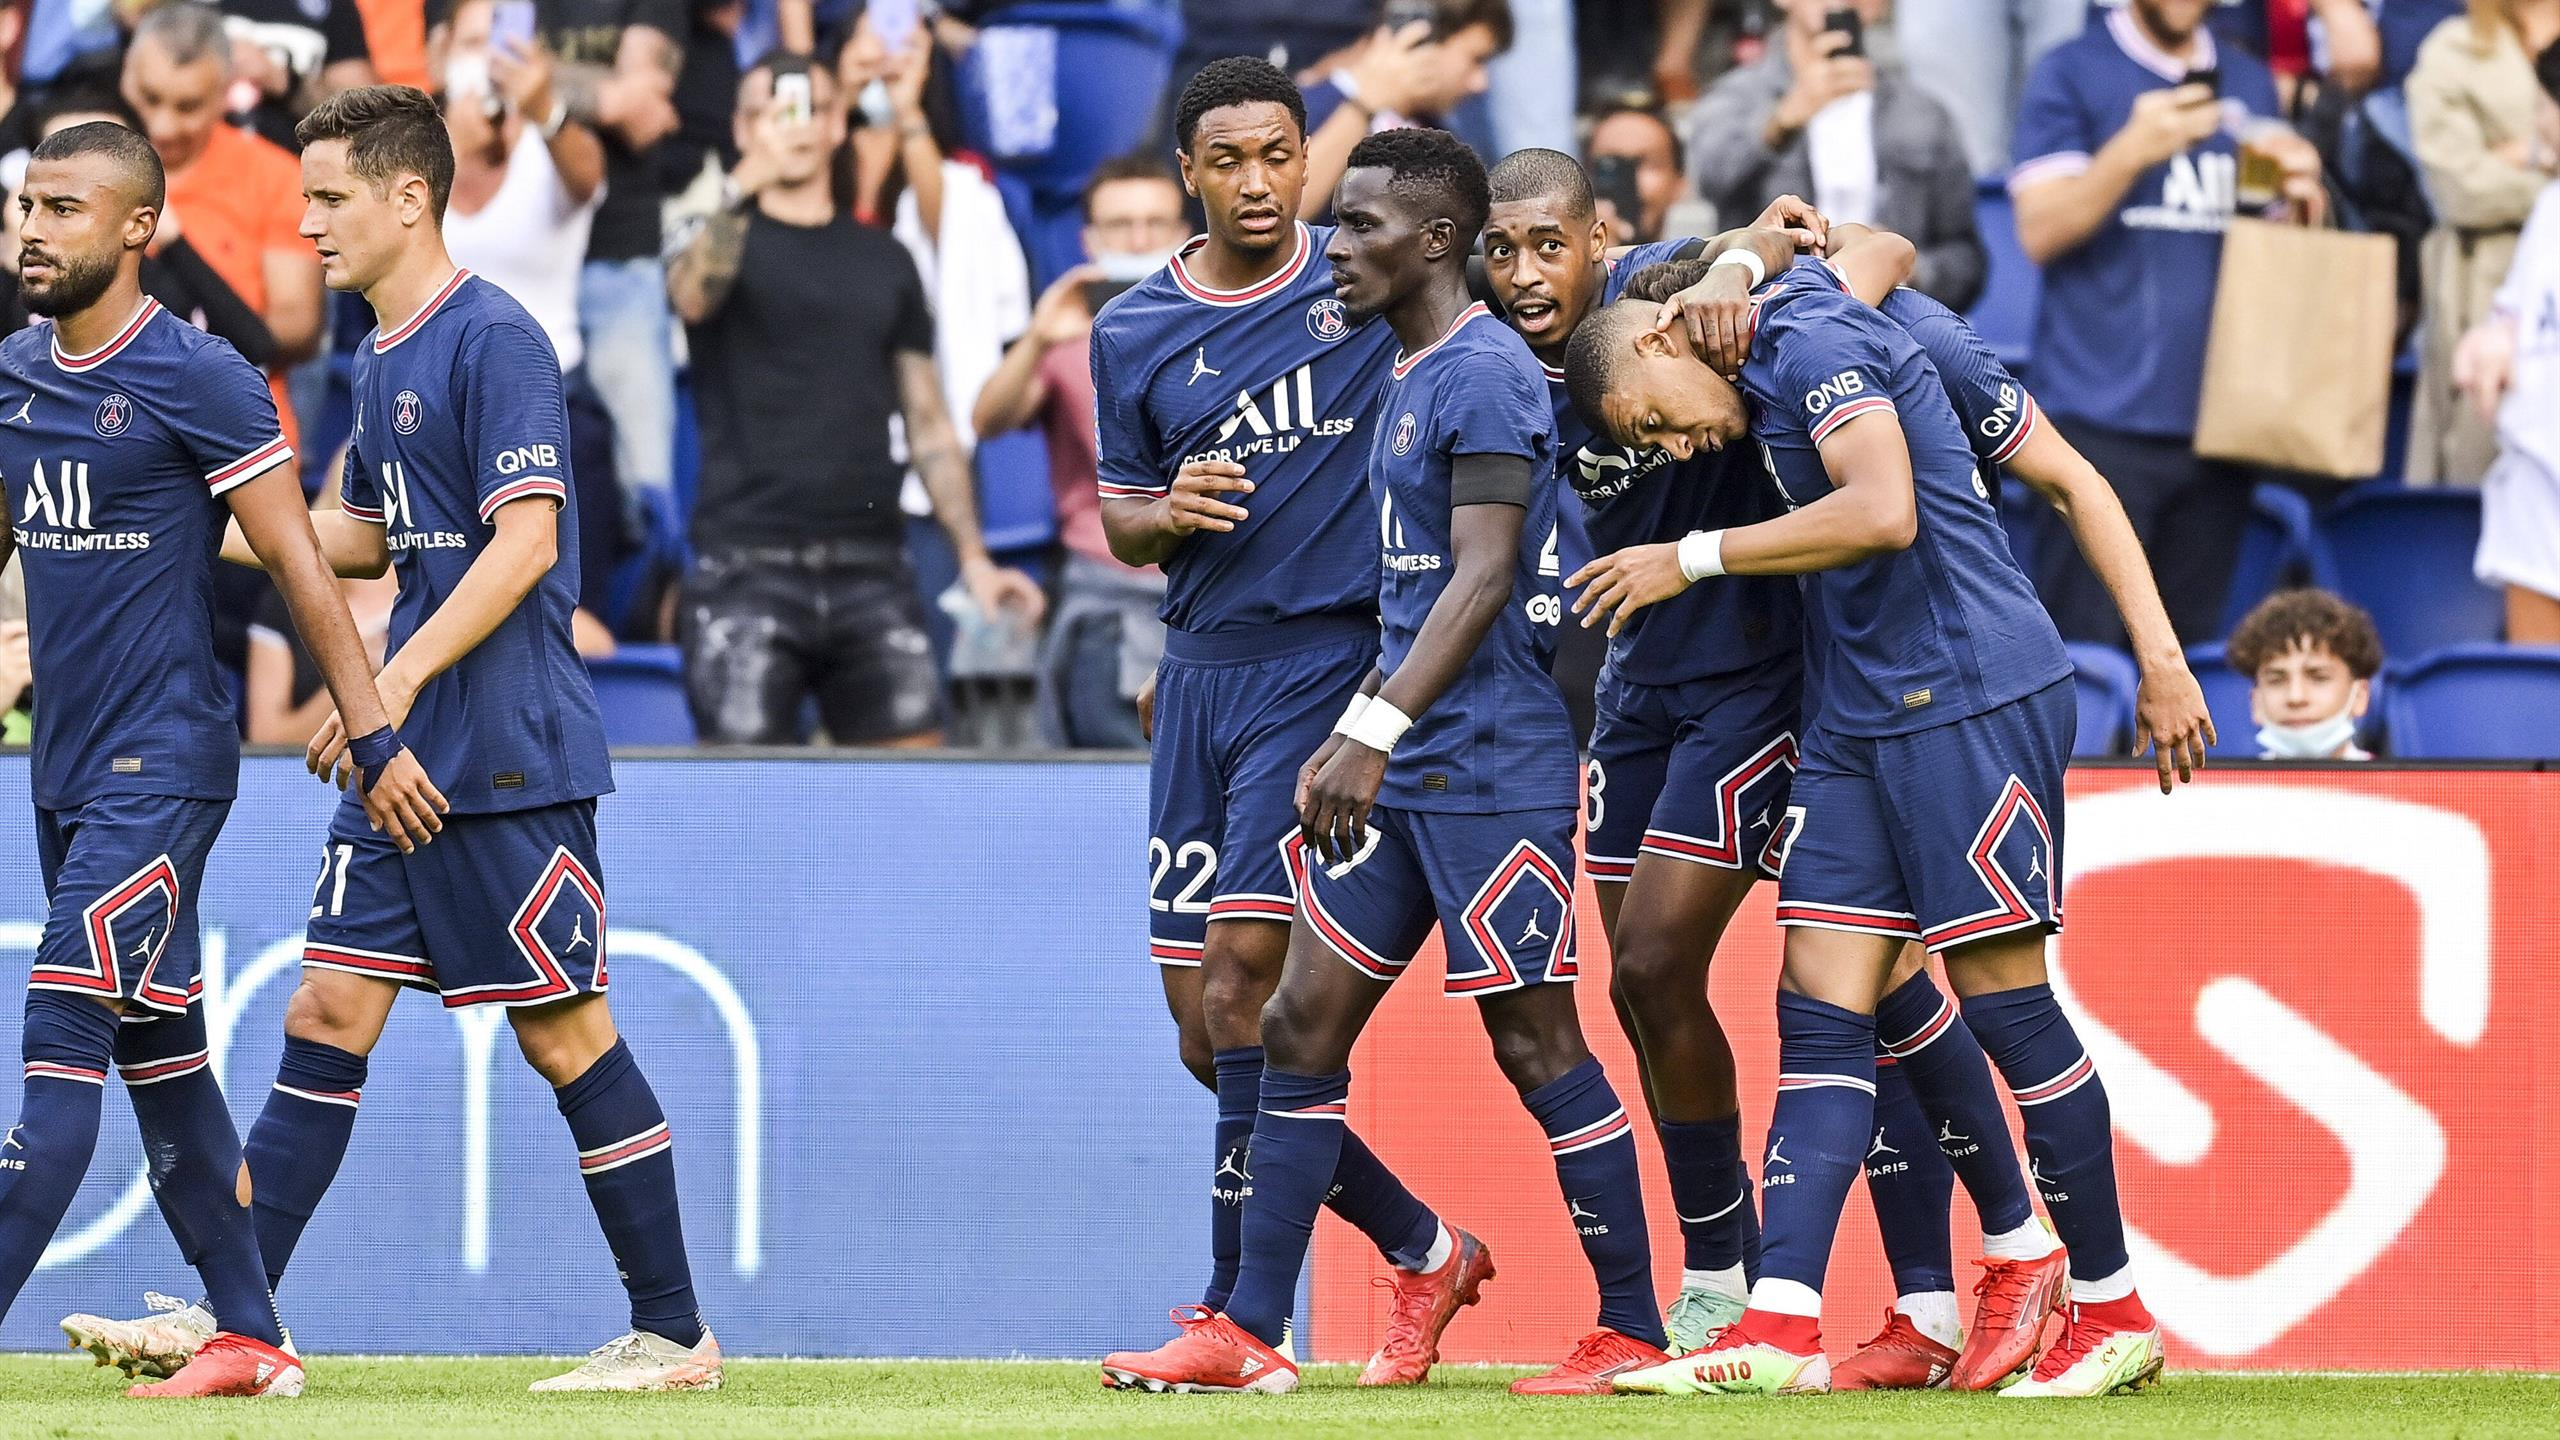 Ligue 1 – PSG beat Clermont (4-0) despite the absence of Mbappé's striker Neymar and Messi